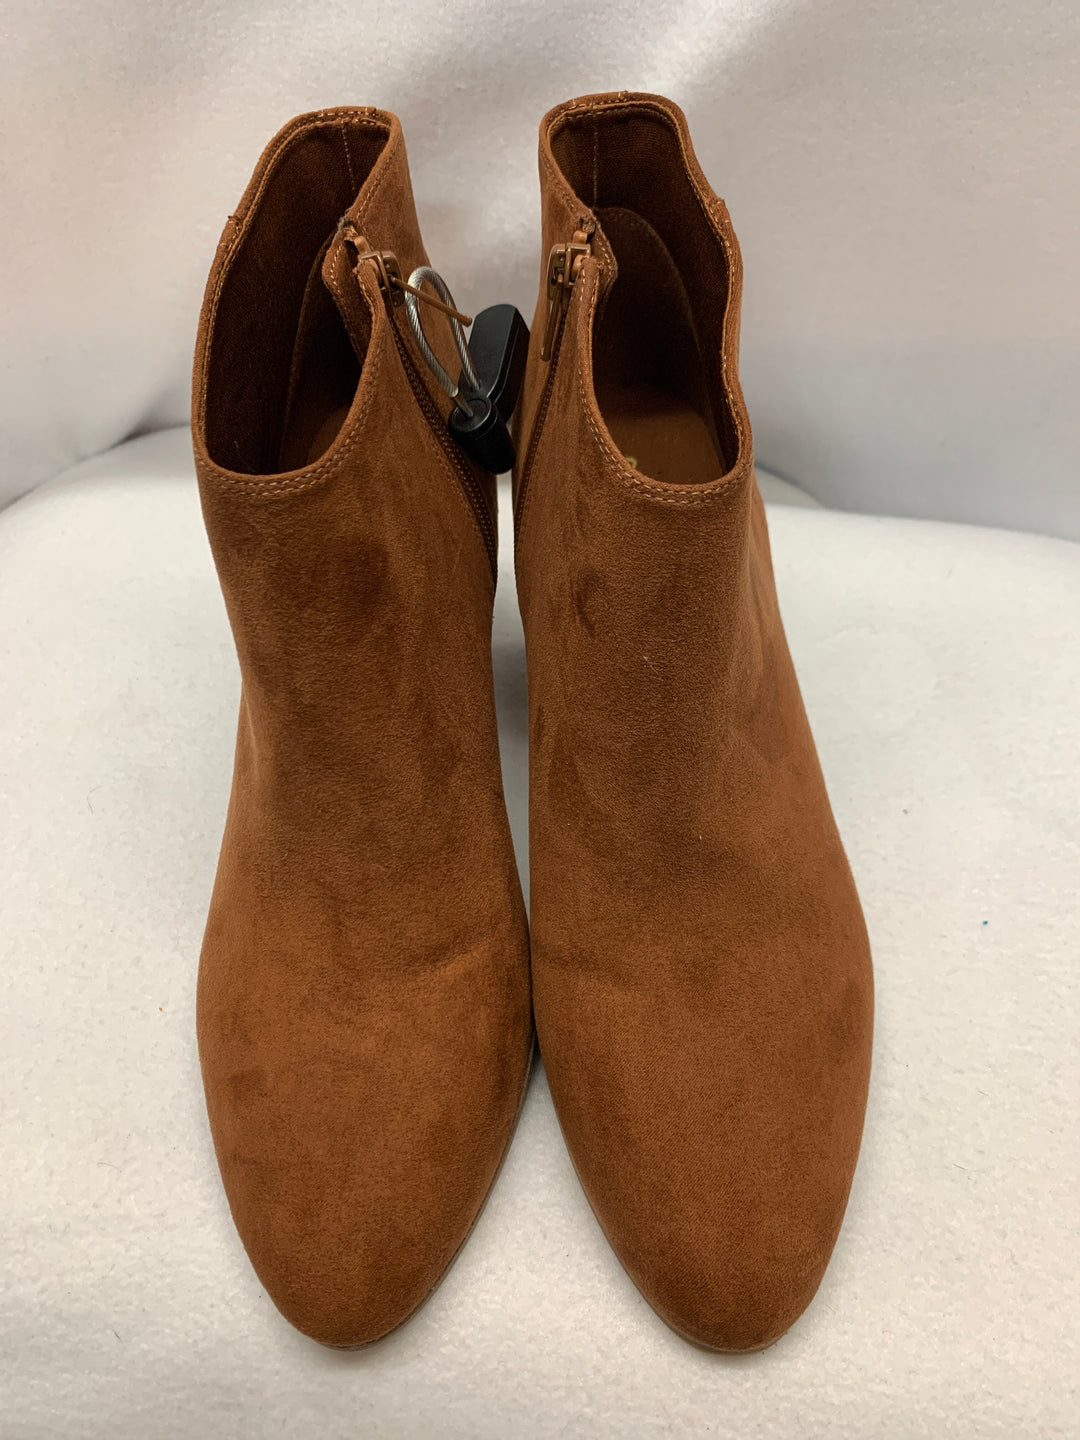 Primary Photo - BRAND: OLD NAVY <BR>STYLE: BOOTS ANKLE <BR>COLOR: BROWN <BR>SIZE: 10 <BR>SKU: 240-24049-51614